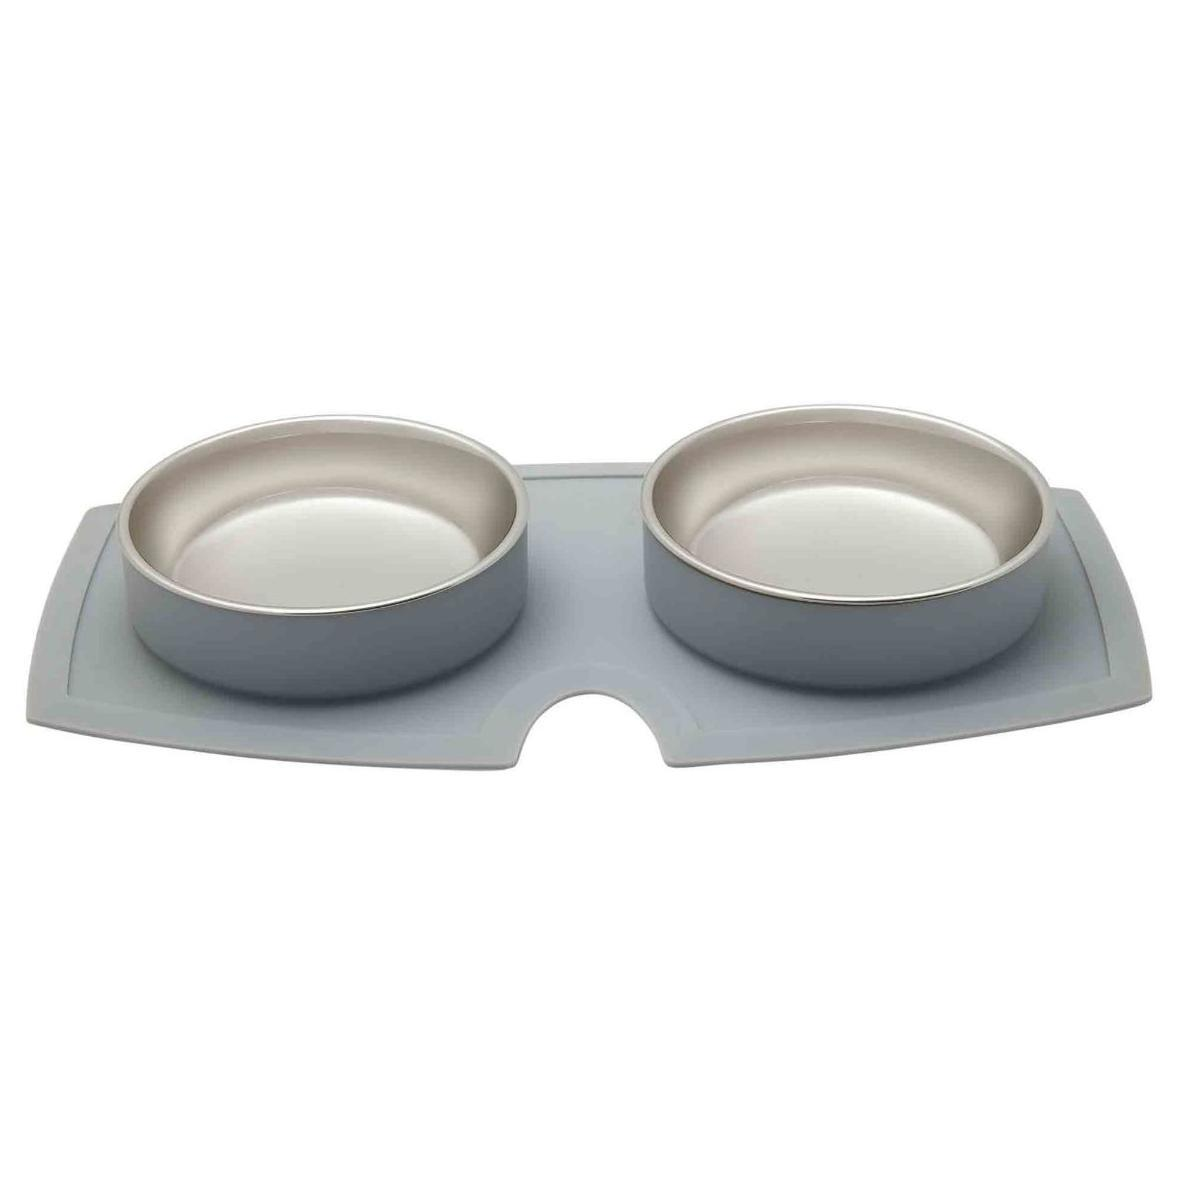 Buddy & Belle B&B Double Silicone Bowls